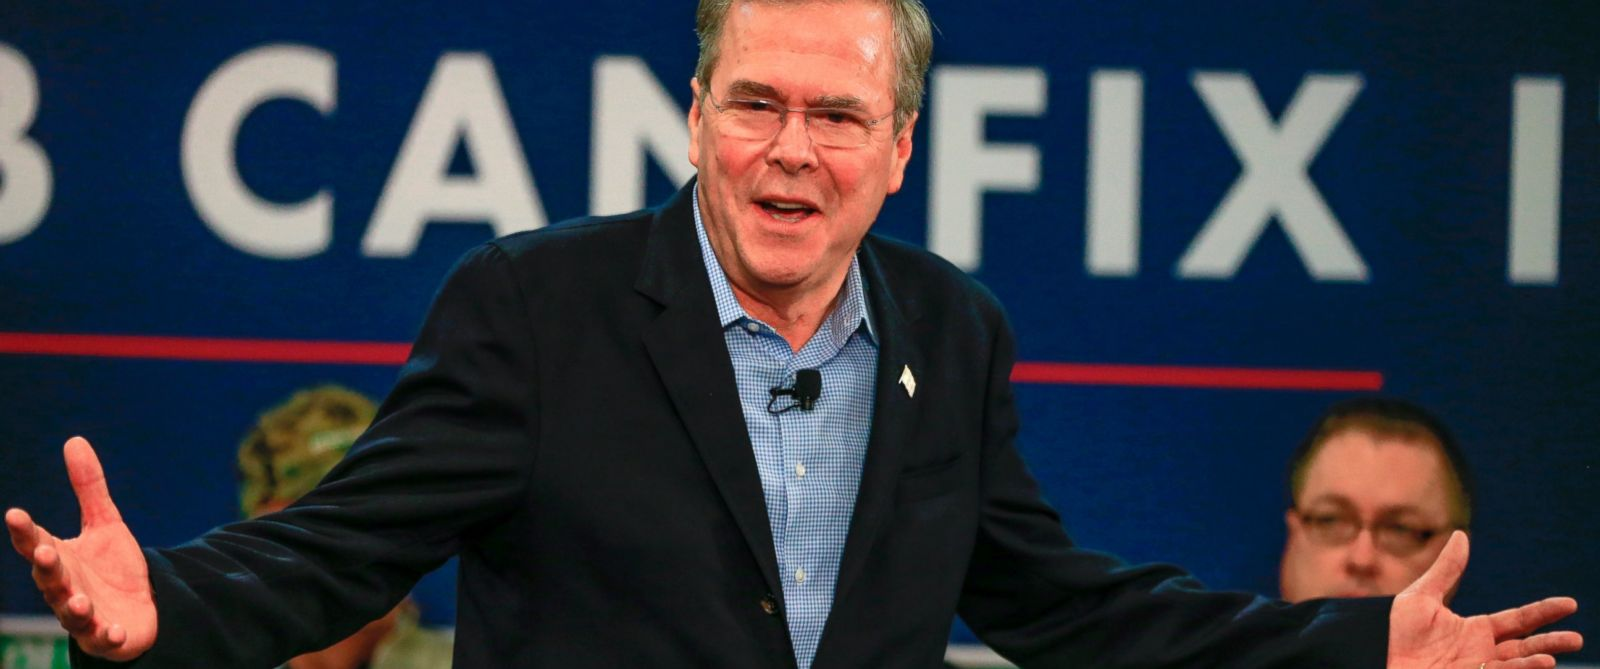 PHOTO:Republican presidential candidate Jeb Bush speaks during a campaign event at the Coca Cola bottling plant in Atlantic, Iowa, Nov. 11, 2015.